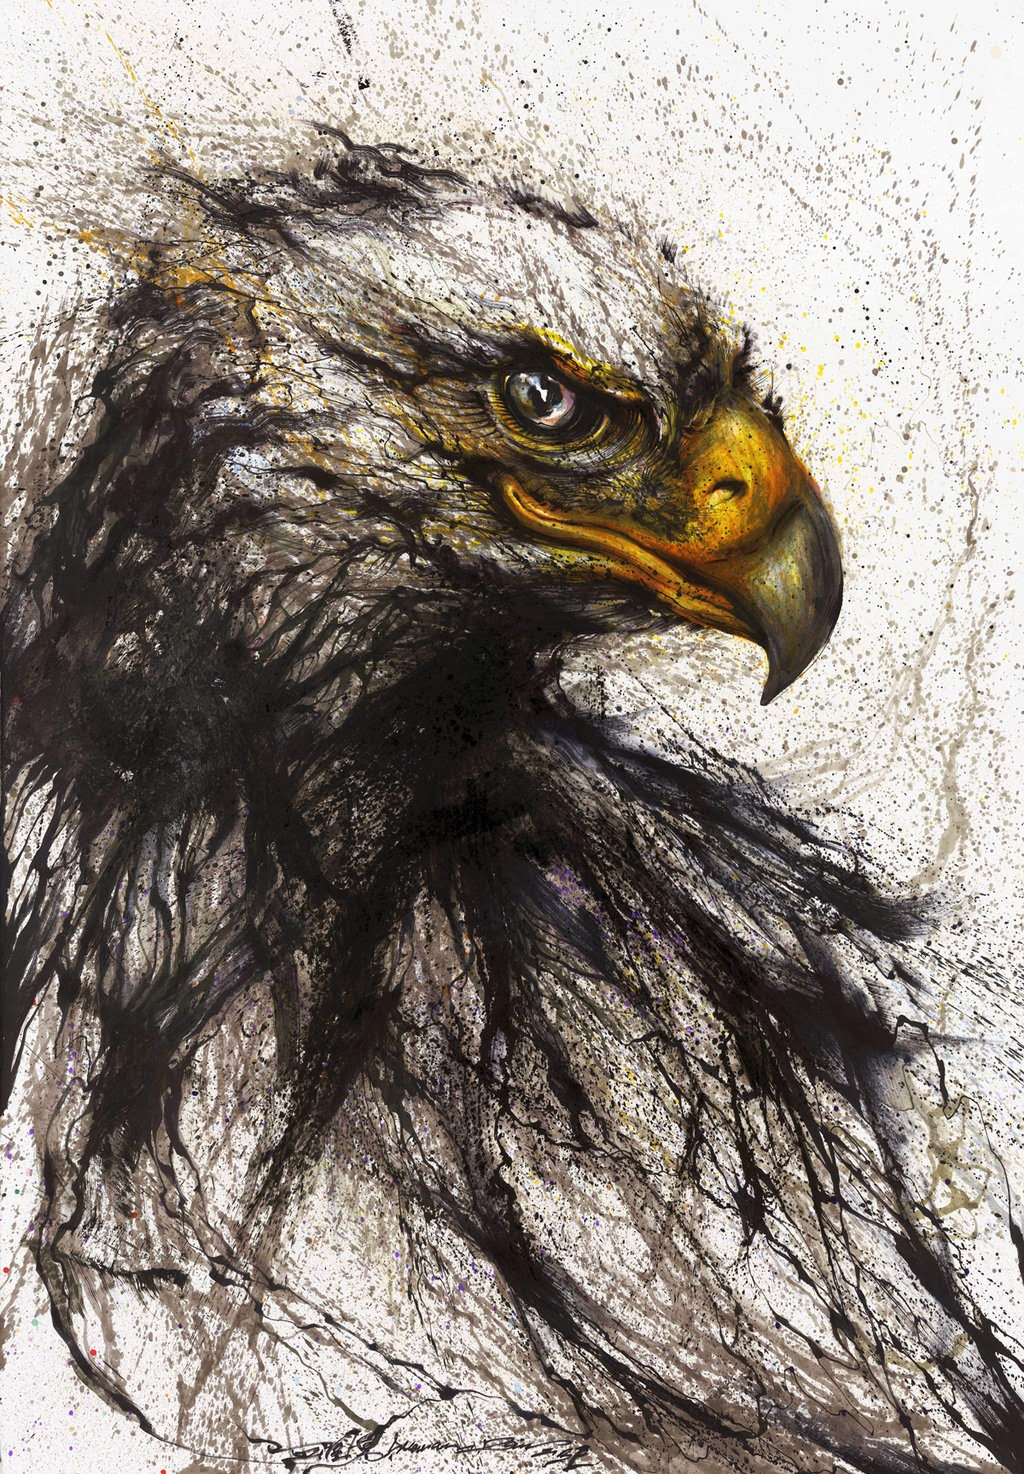 05-Eagle-1-Hua-Tunan-huatunan-Melting-&-Running-Ink-Drawings-www-designstack-co